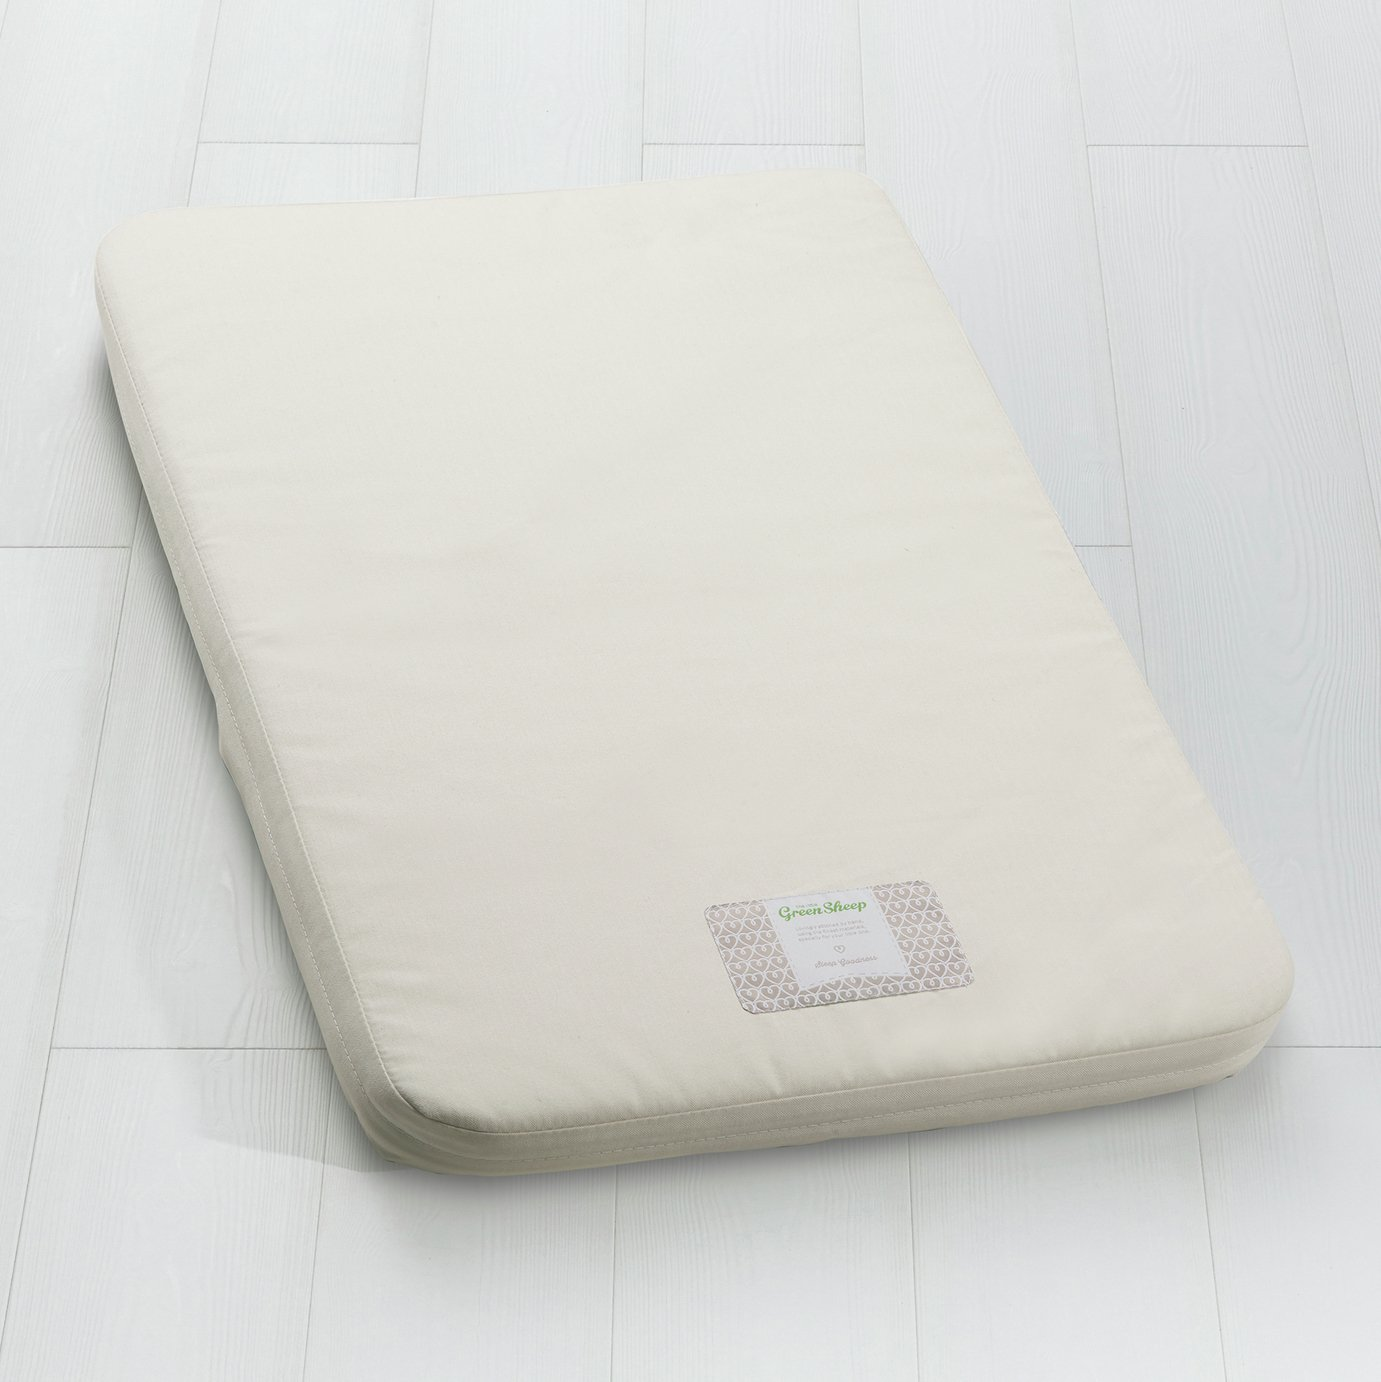 The Little Green Sheep Crib Mattress